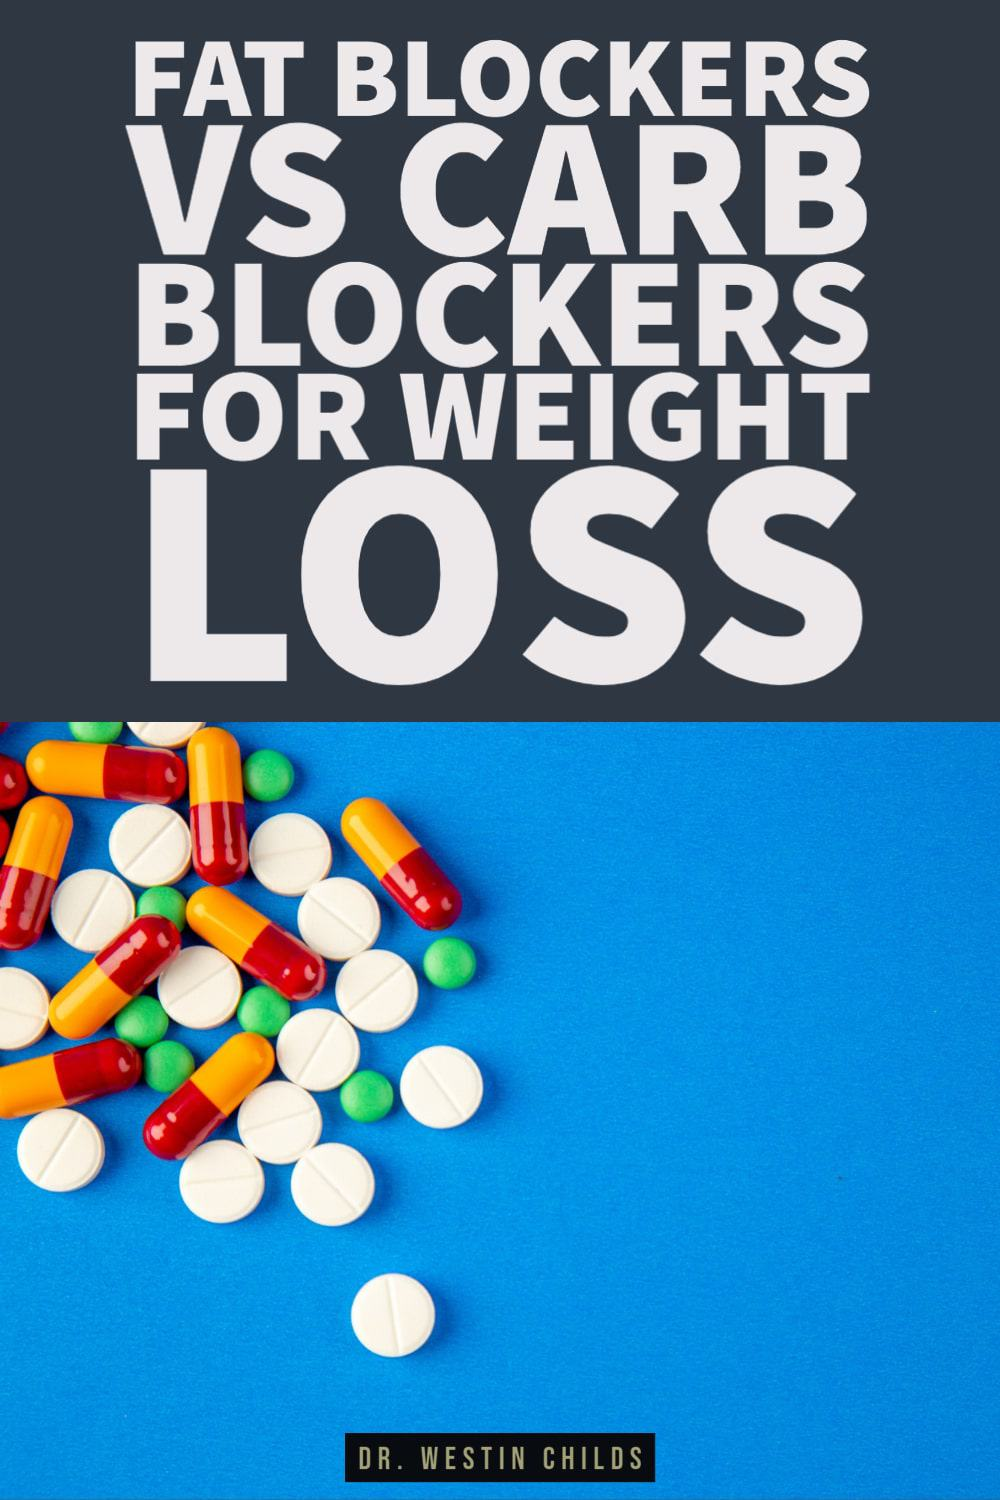 fat blockers vs carb blockers - which work best?